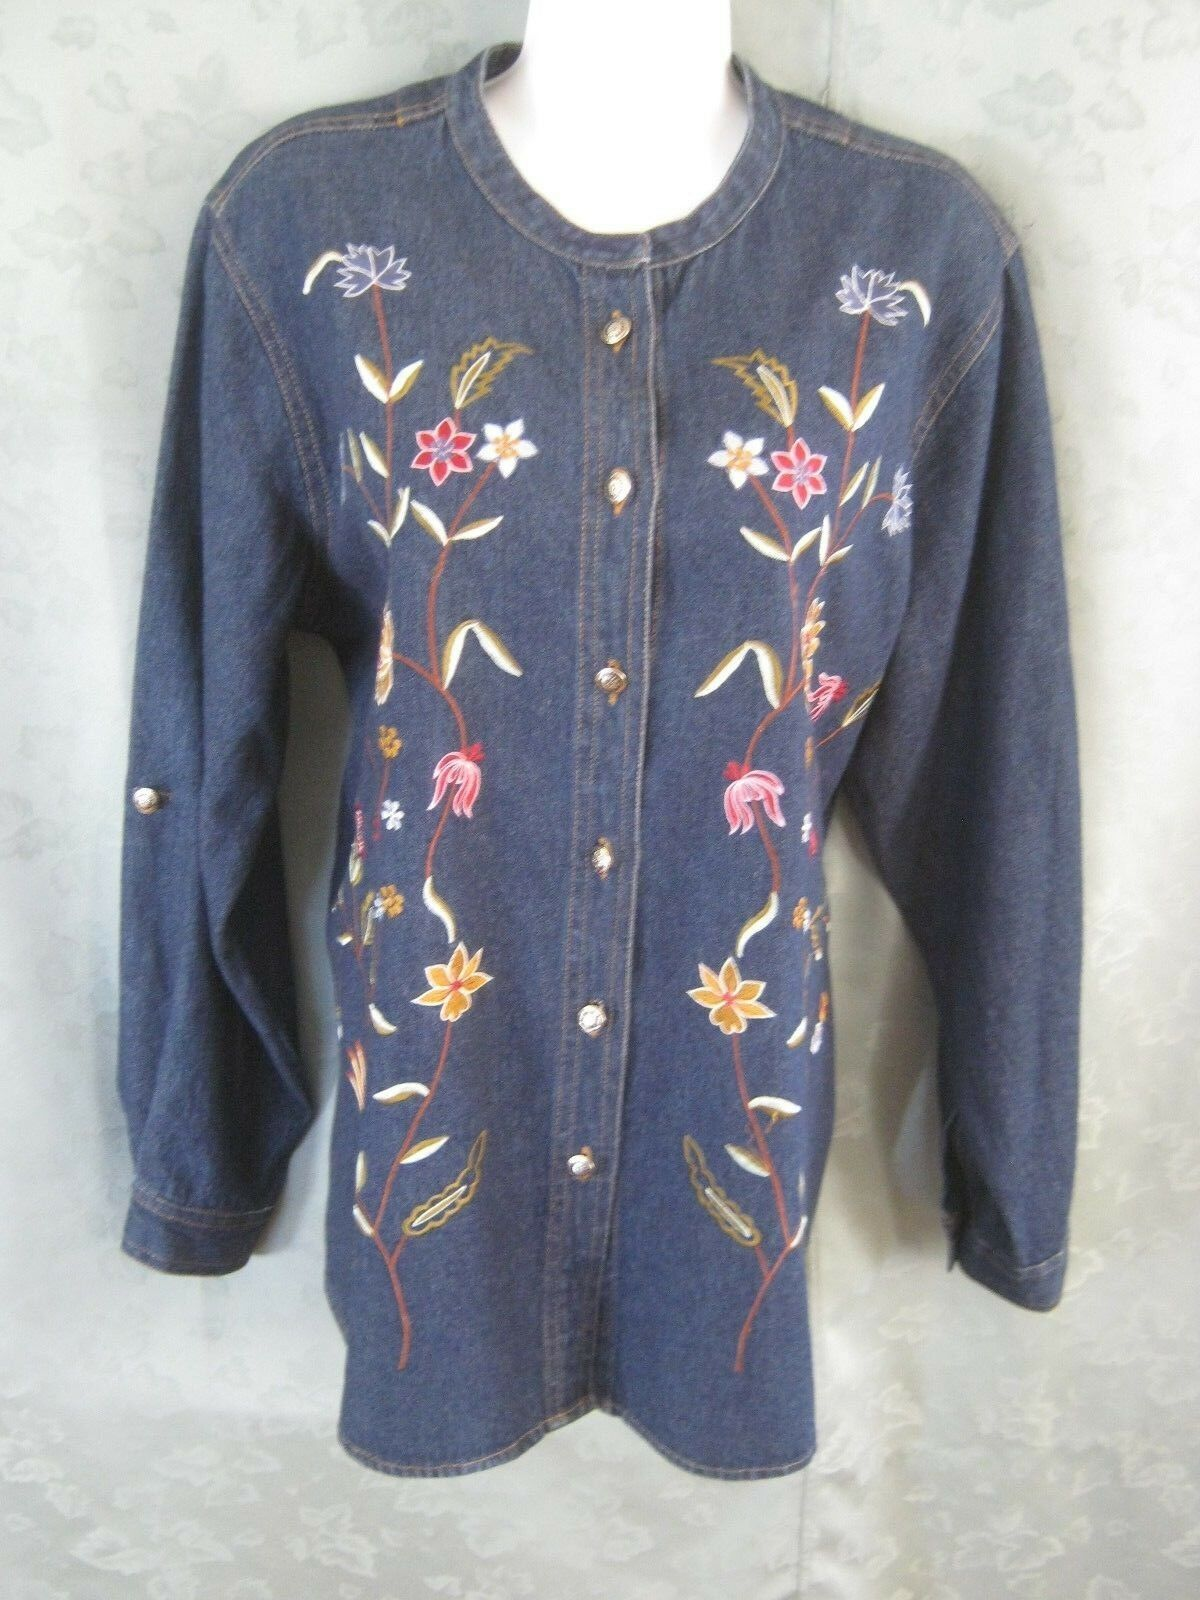 Coldwater Creek Shirt Size Large bluee Denim Floral Embroidered